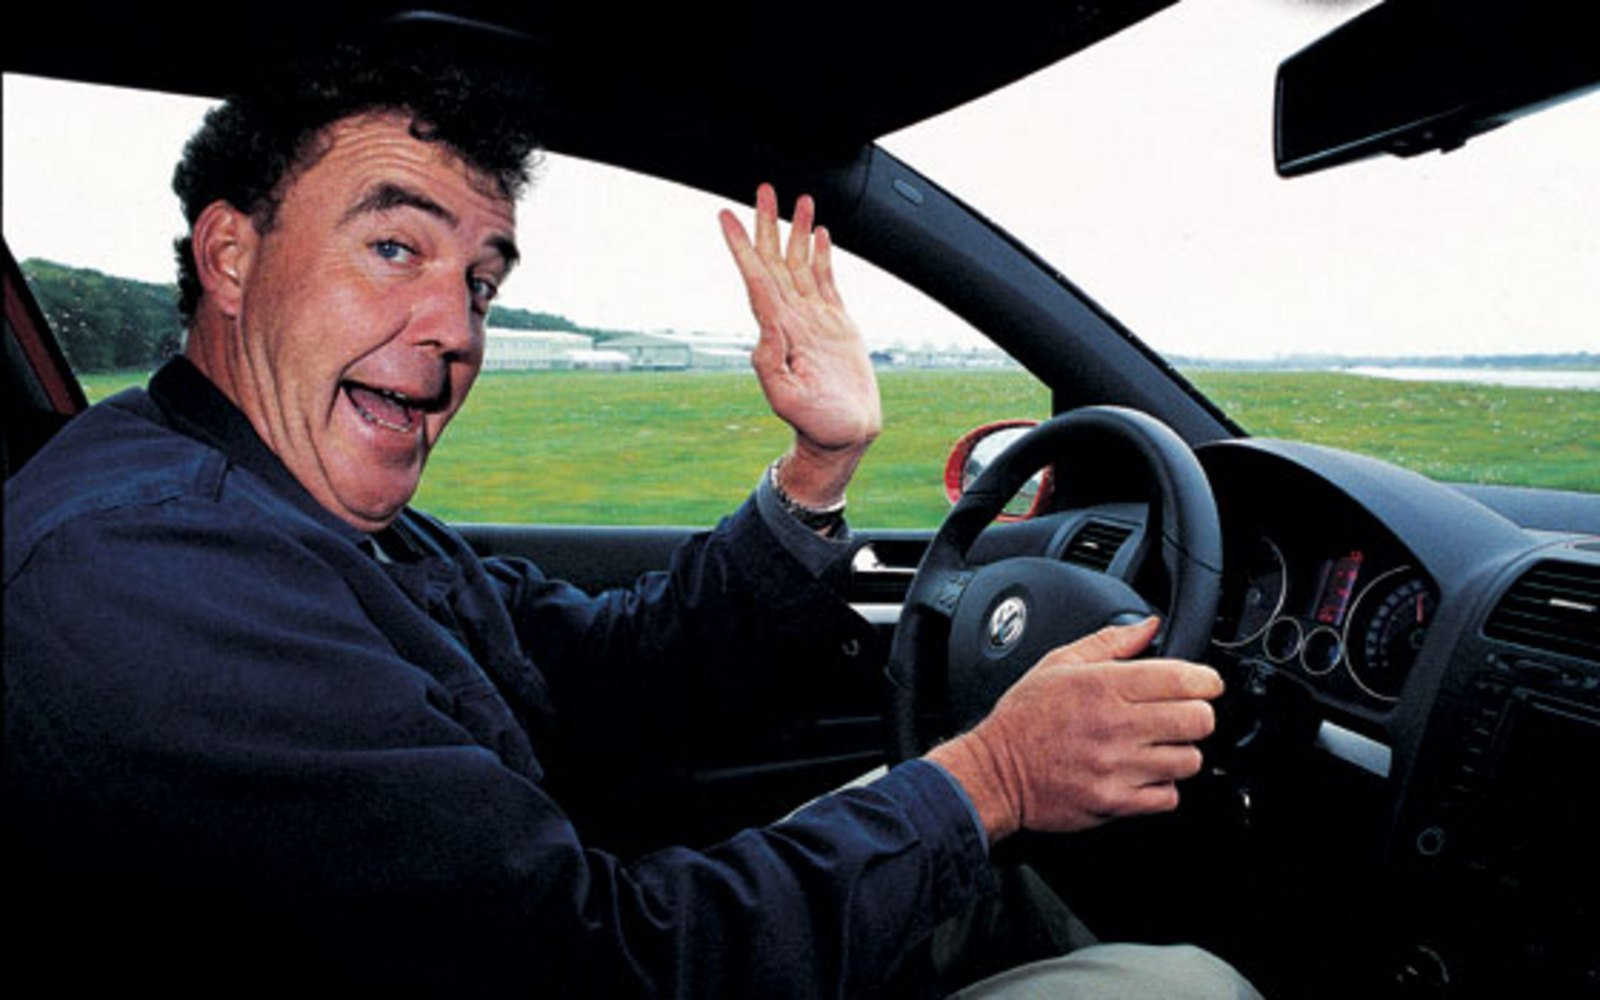 Jeremy Clarkson Quotes News Top Speed